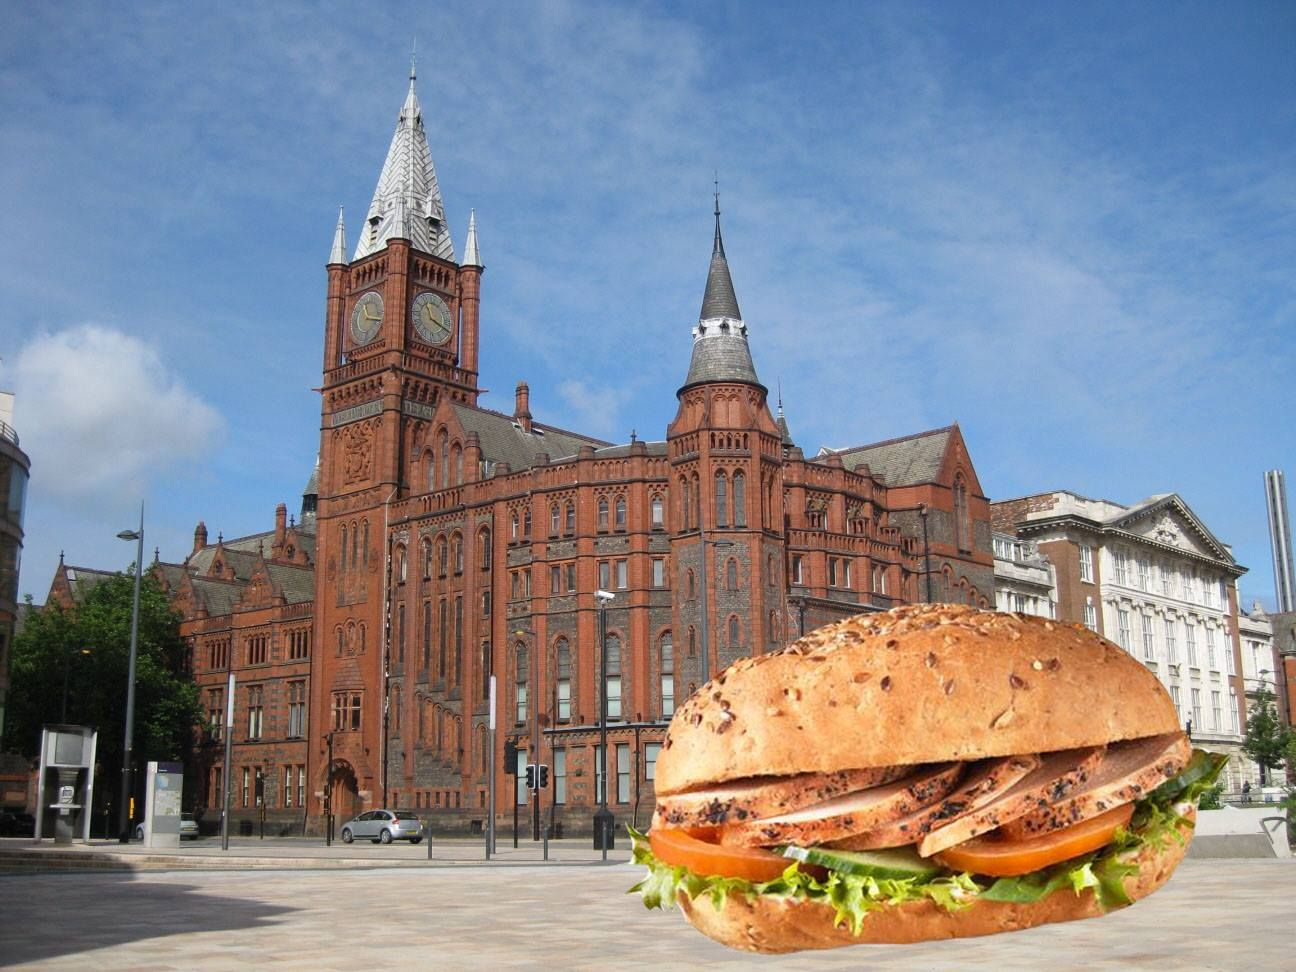 Image may contain: Steeple, Spire, Church, Cathedral, Bread, Bagel, Burger, Tower, Worship, Mosque, Dome, Building, Architecture, Sandwich, Food